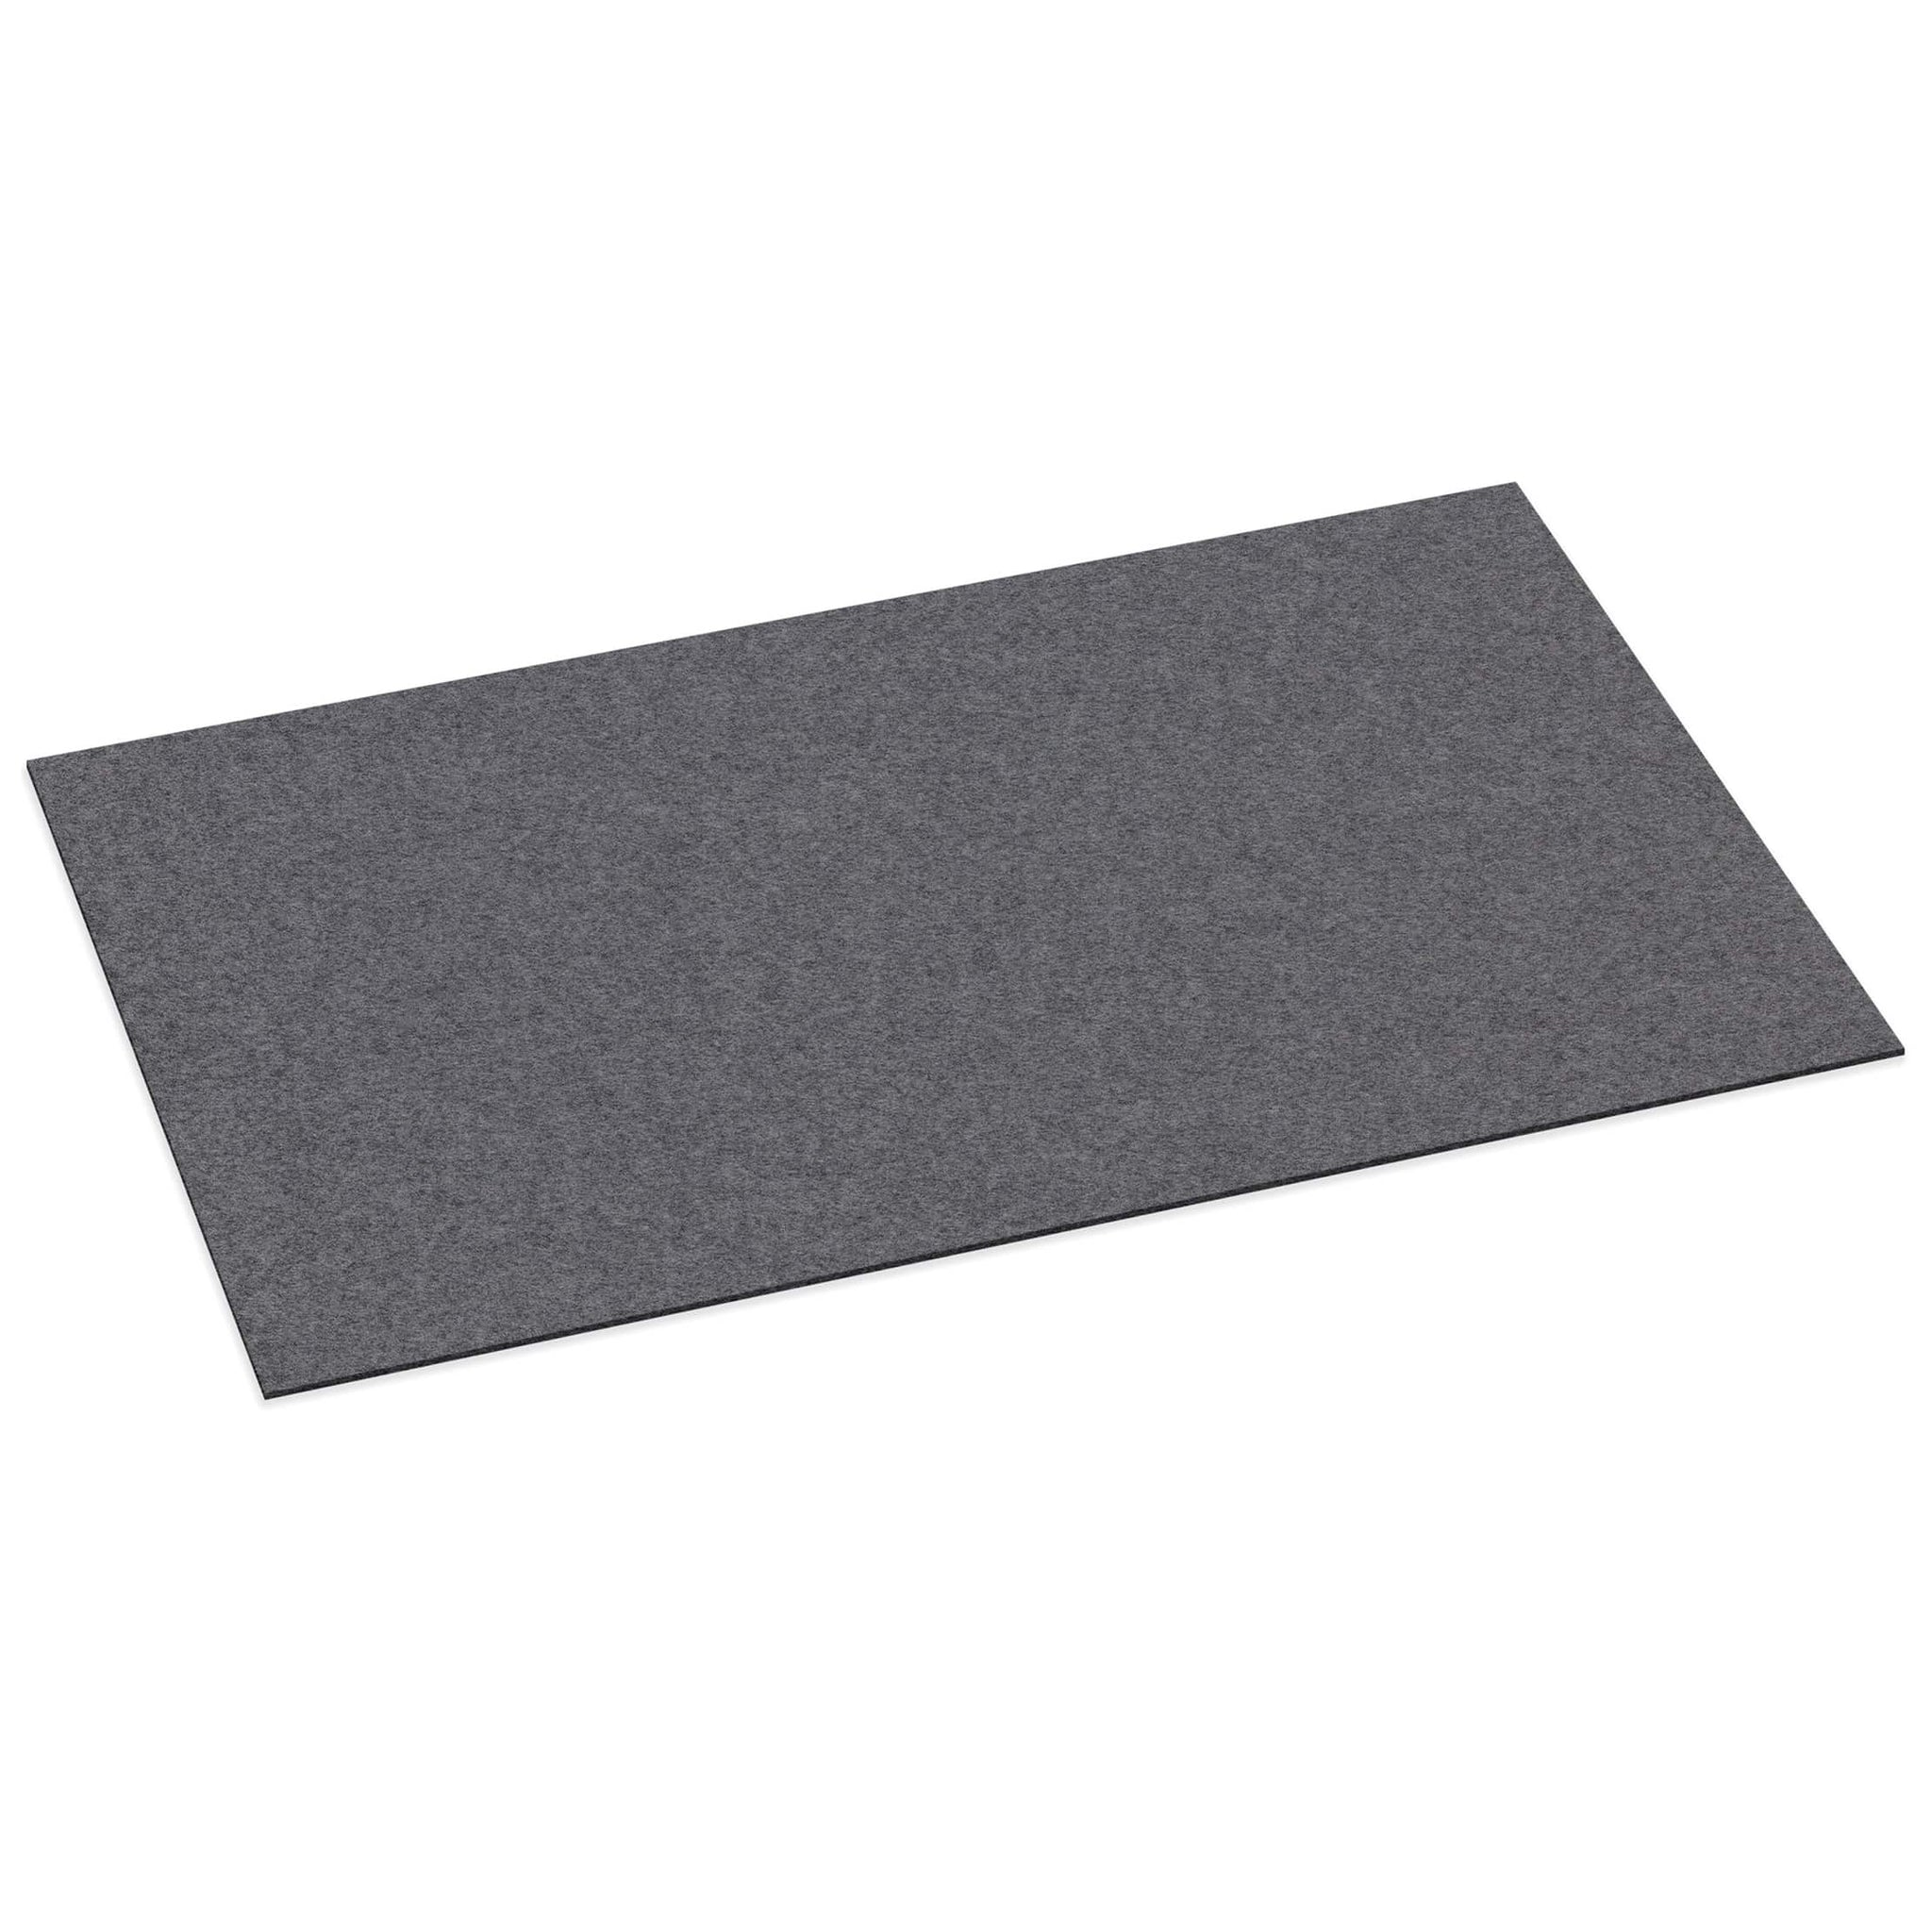 Rectangular Felt Desk Pad in Charcoal by Hey-Sign 300109001 looking at Front-Angle